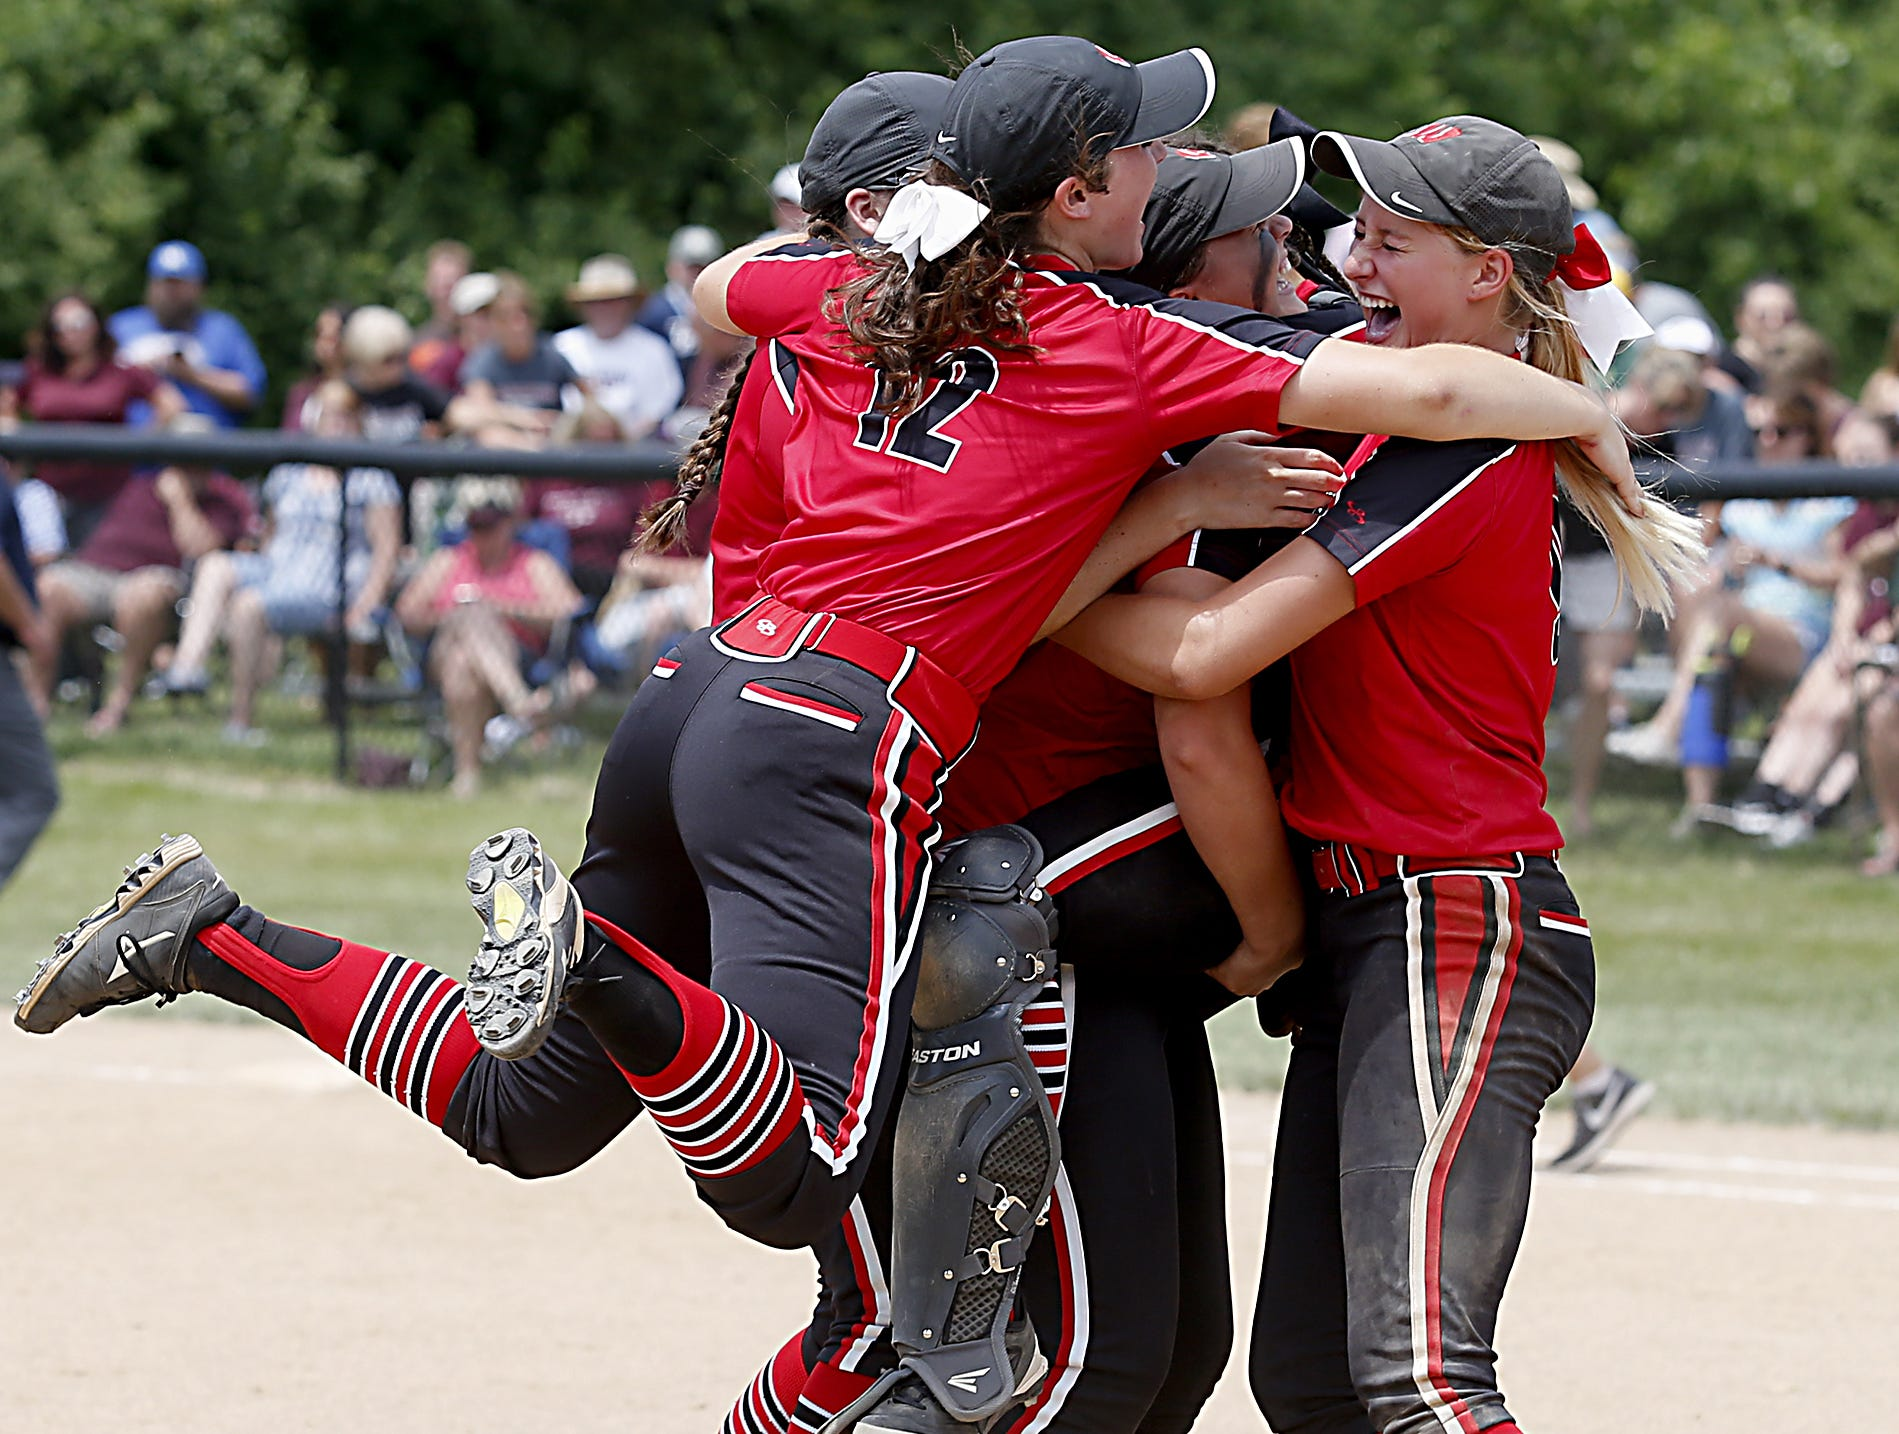 Lakota West infielder Taylor Williams (12) jumps on her teammates after defeating Lebanon 5-0 in their Division I regional softball final at Centerville Saturday, May 26, 2018.